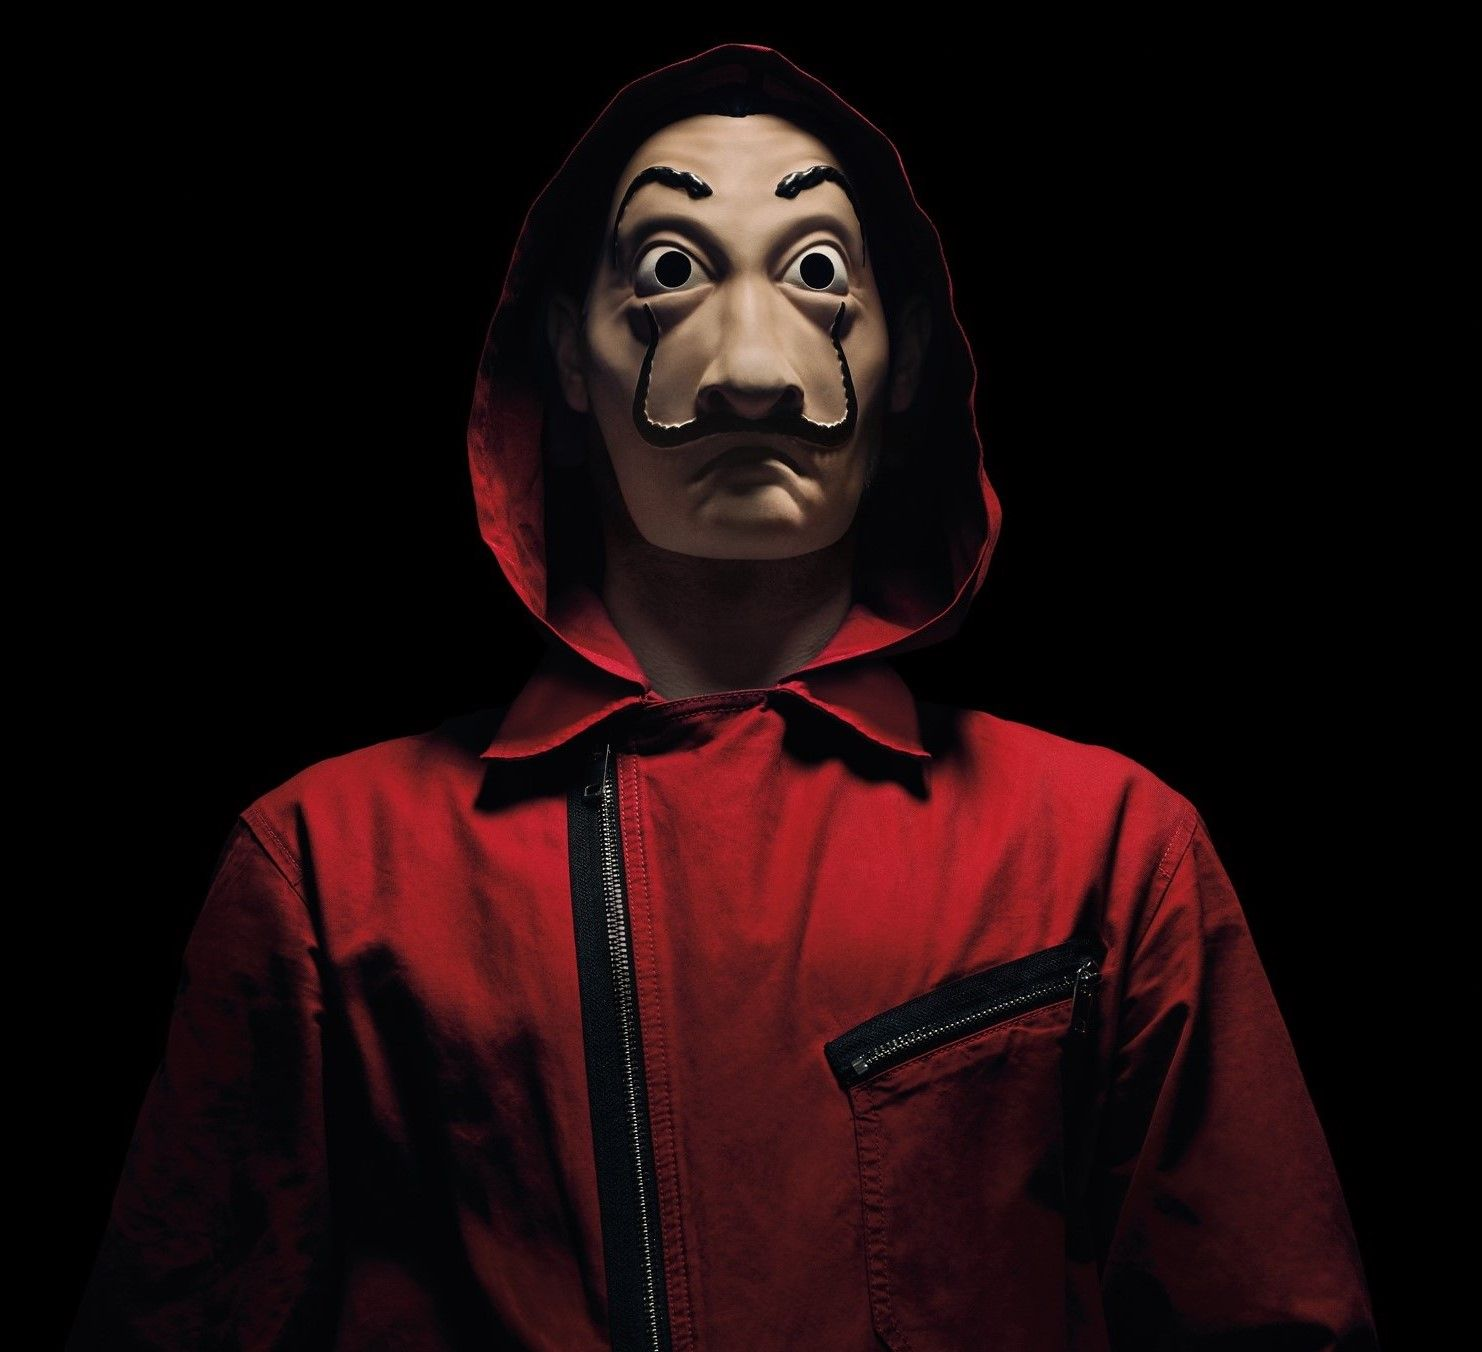 Money Heist The Real Reason The Robbers Have City Names Mobile Legend Wallpaper Money Wallpaper Iphone Indian Flag Wallpaper Home screen iphone money heist mask